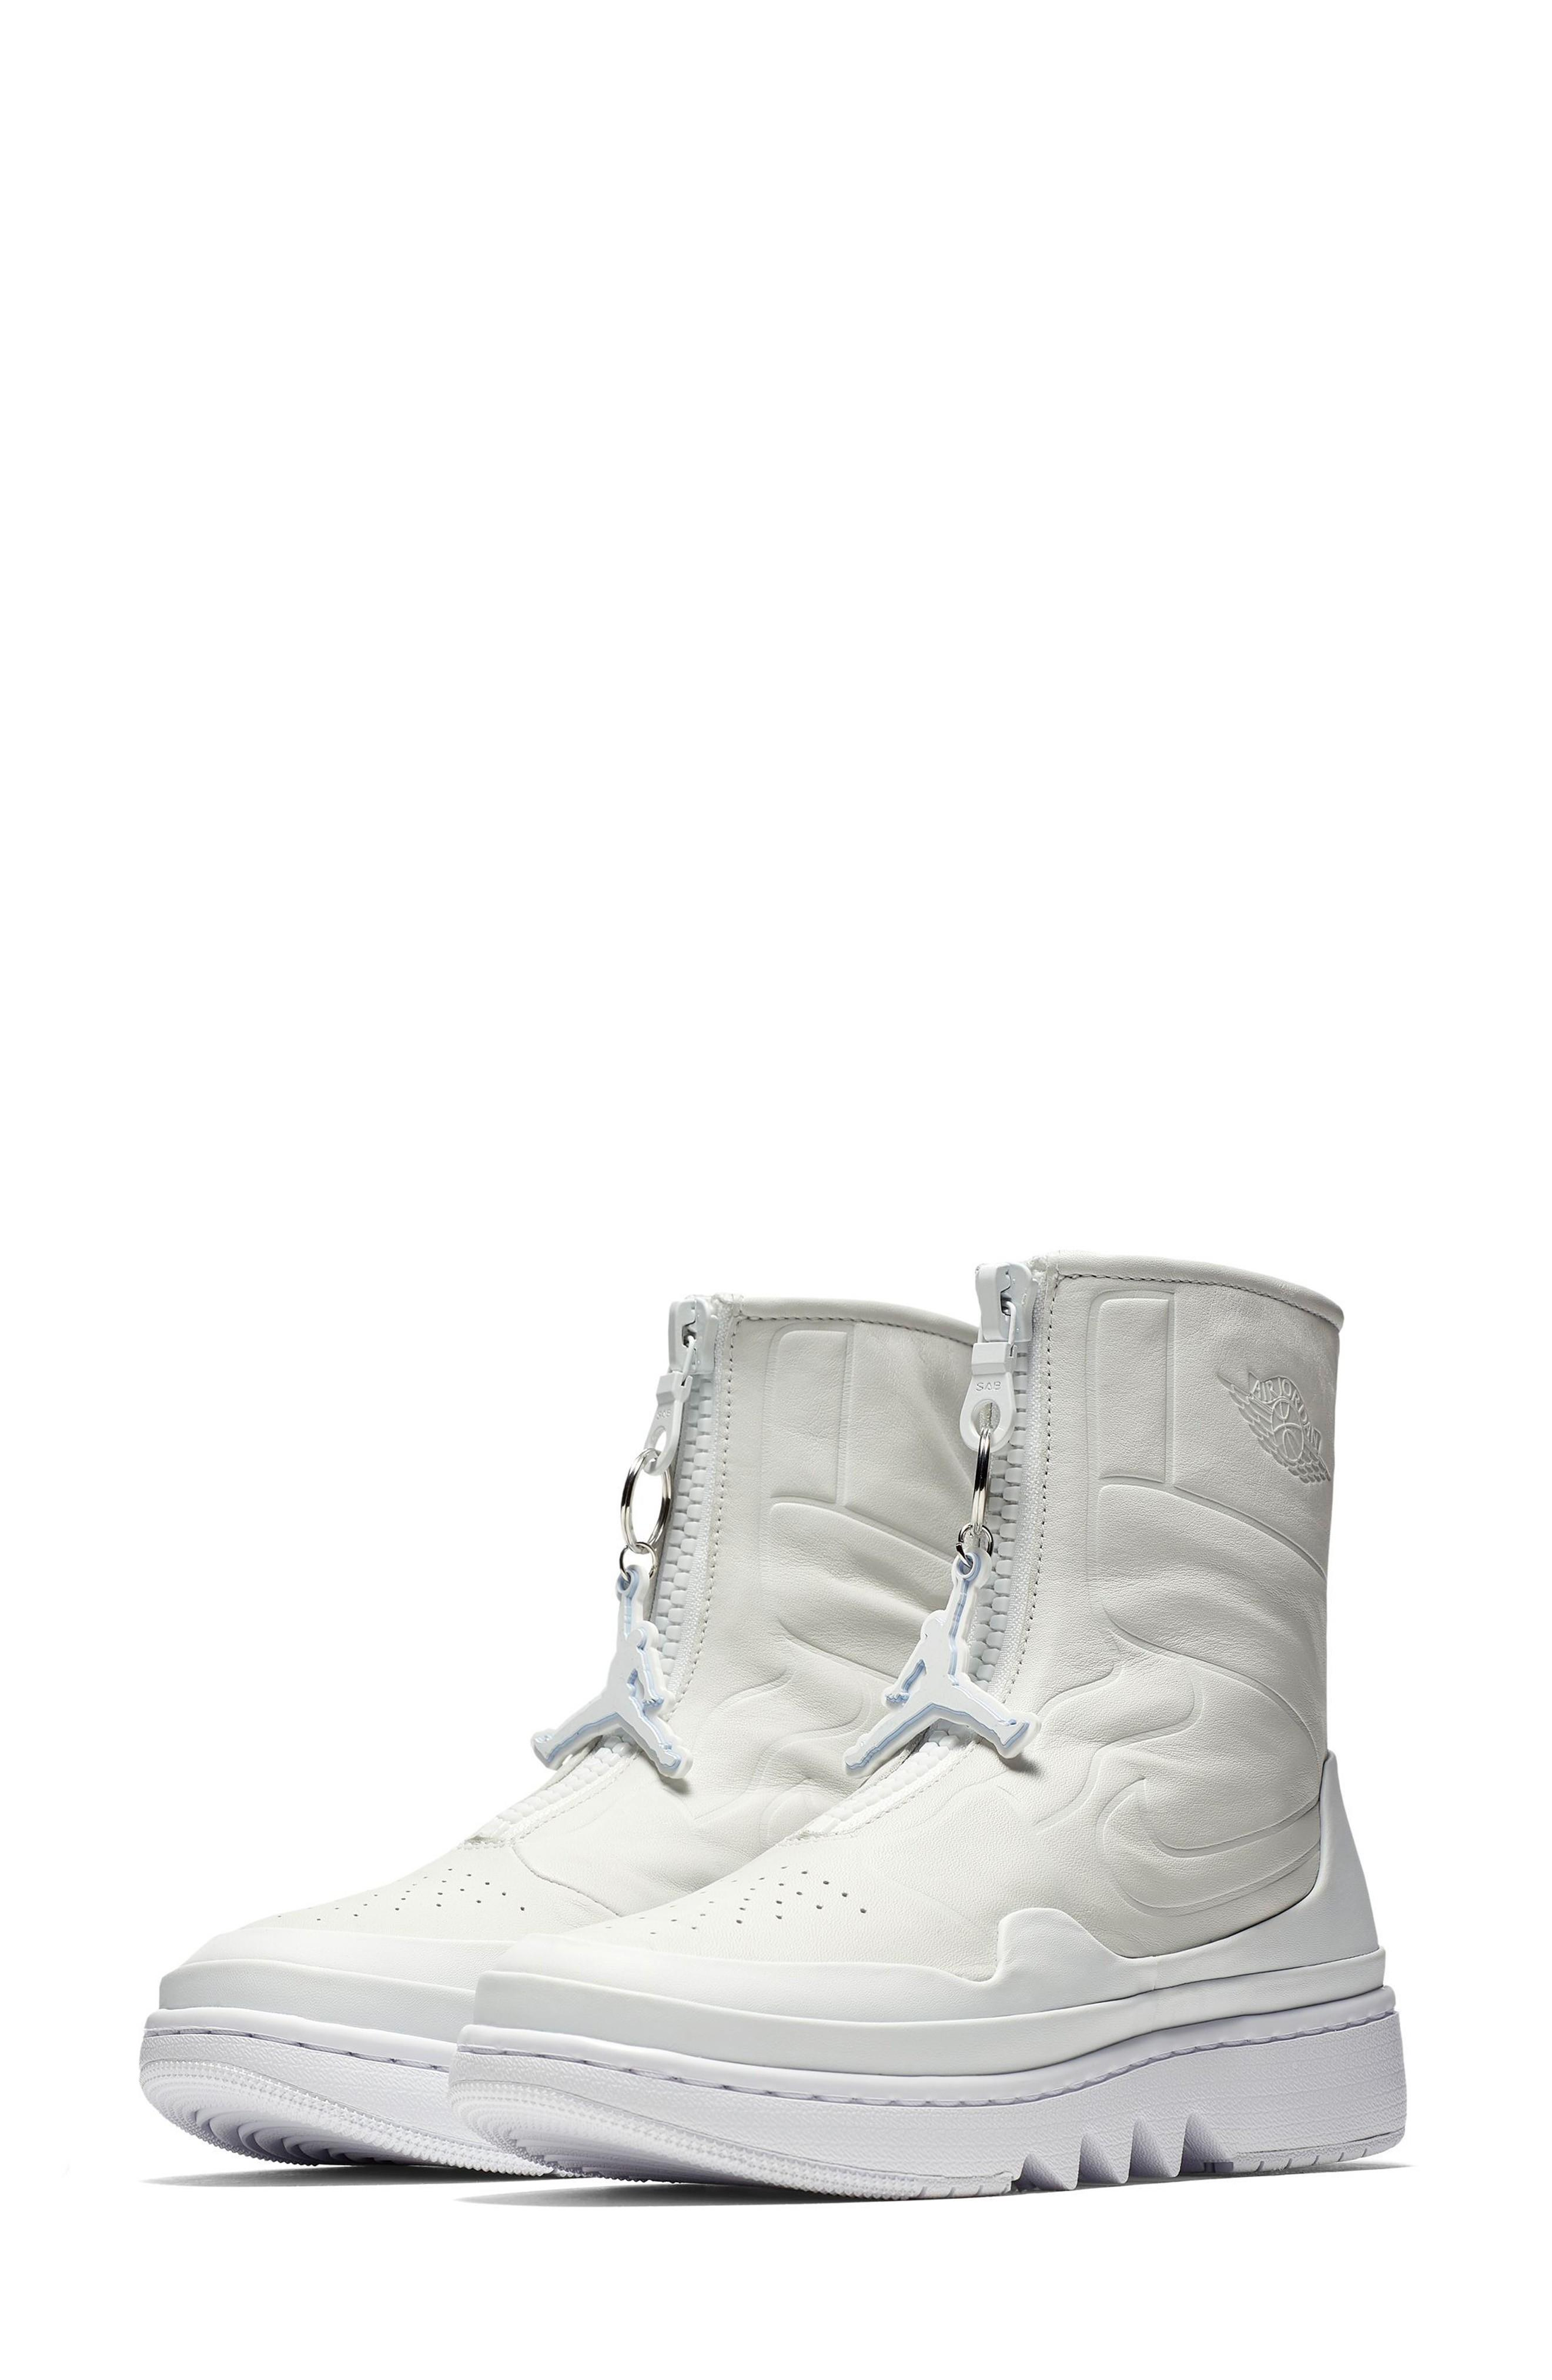 new product ed91e 06c6e Nike Women s Air 1 Jester Xx Casual Shoes, White